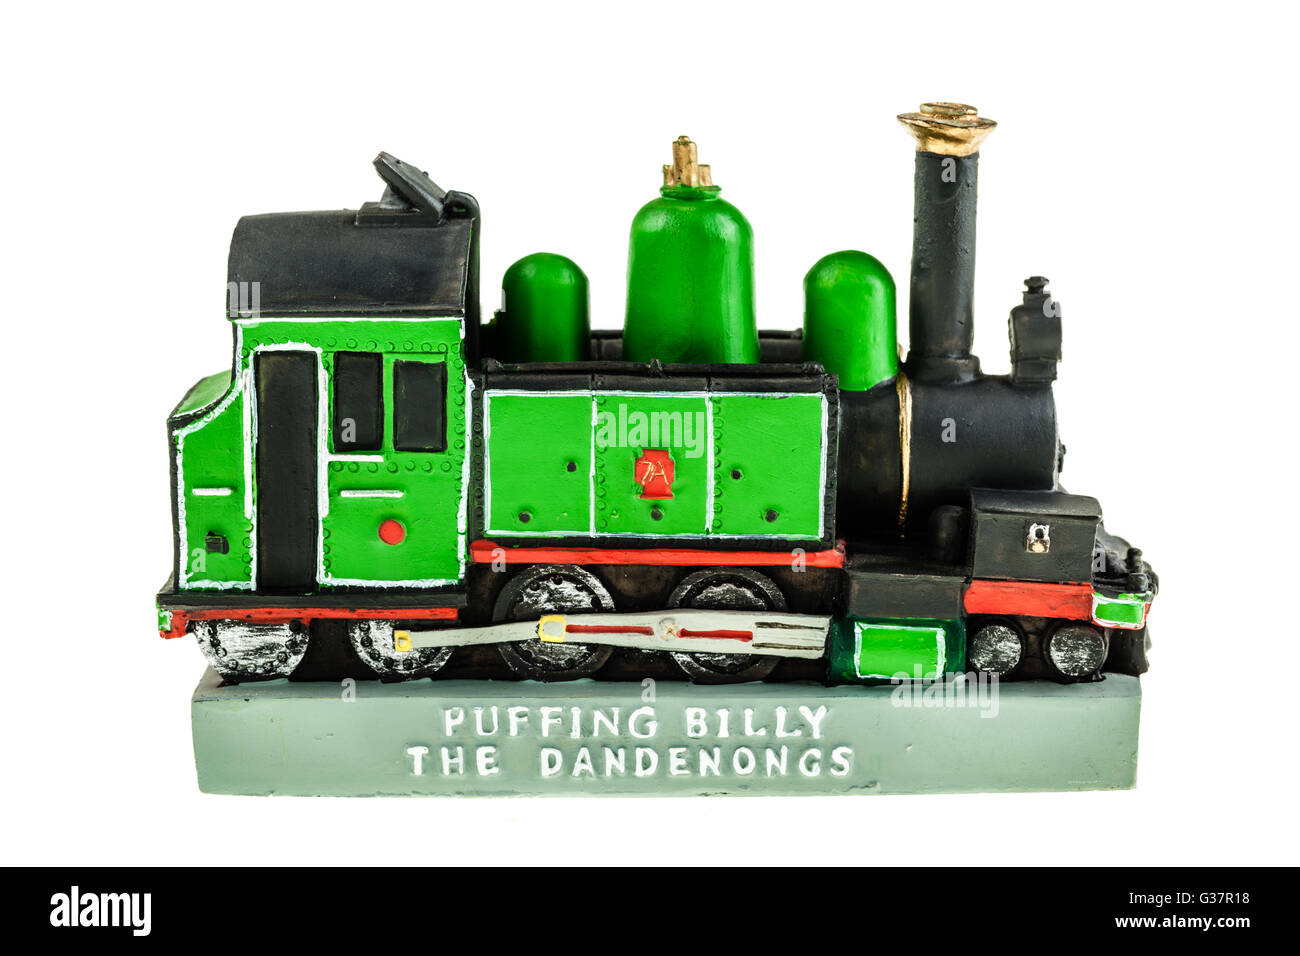 a model of the puffing billy train isolated over a white background - Stock Image